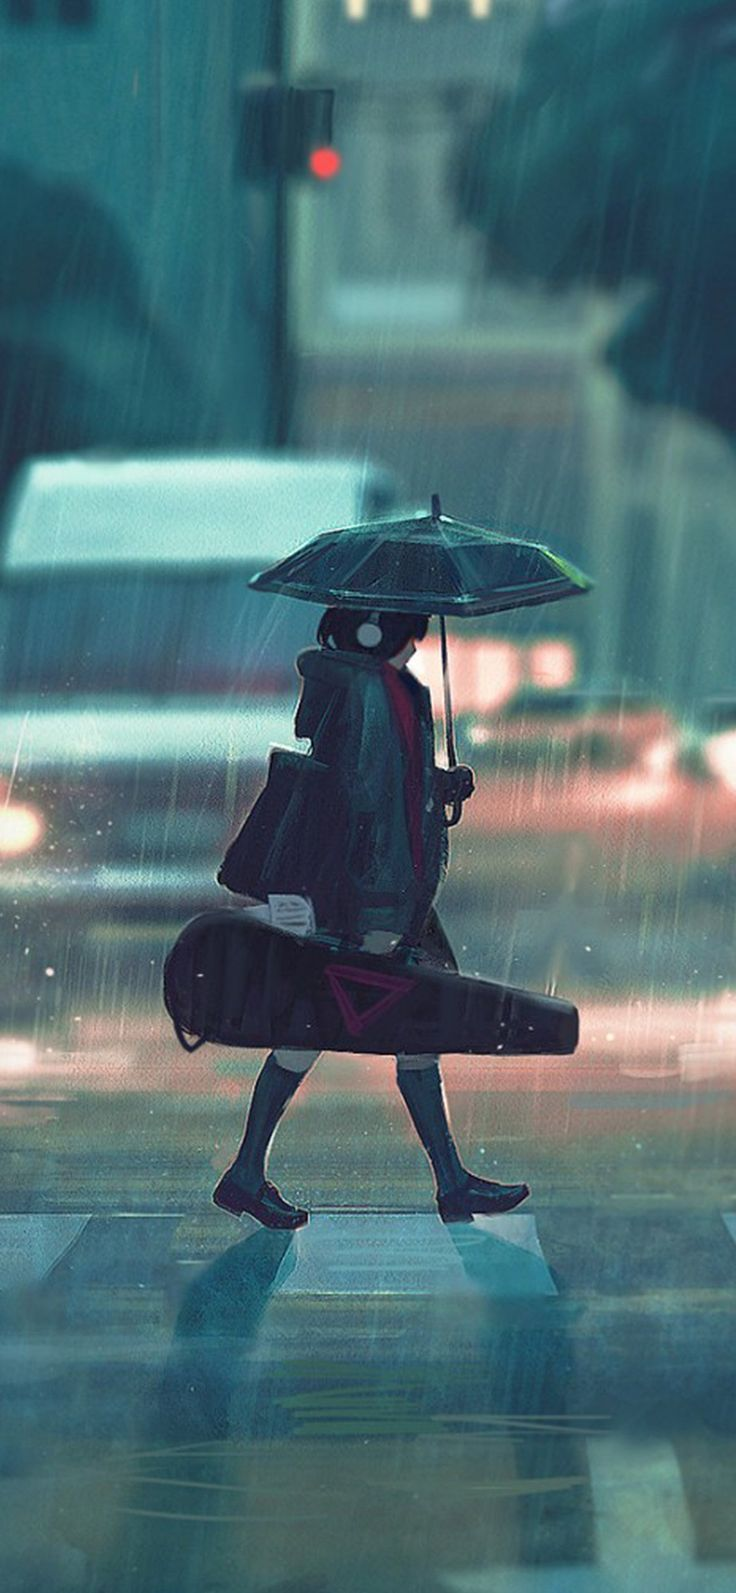 rainy day anime paint girl iPhone X wallpaper ภาพประกอบ